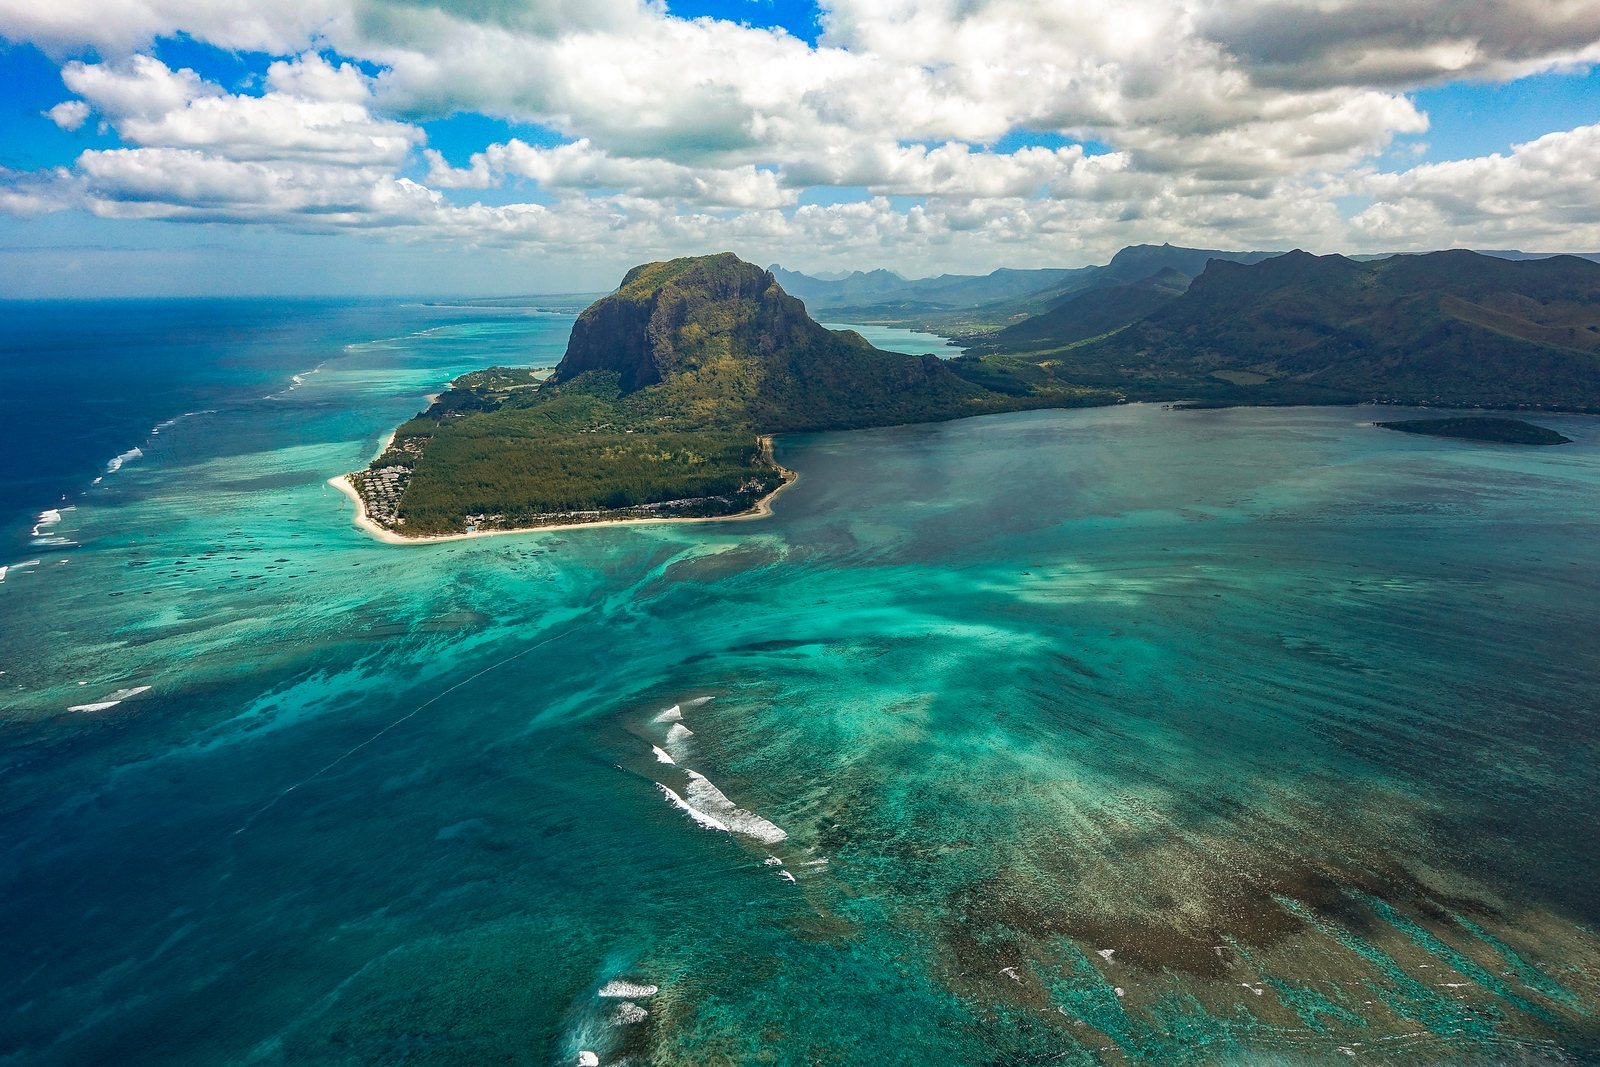 10 Fun Facts About Mauritius That You Didn't Know